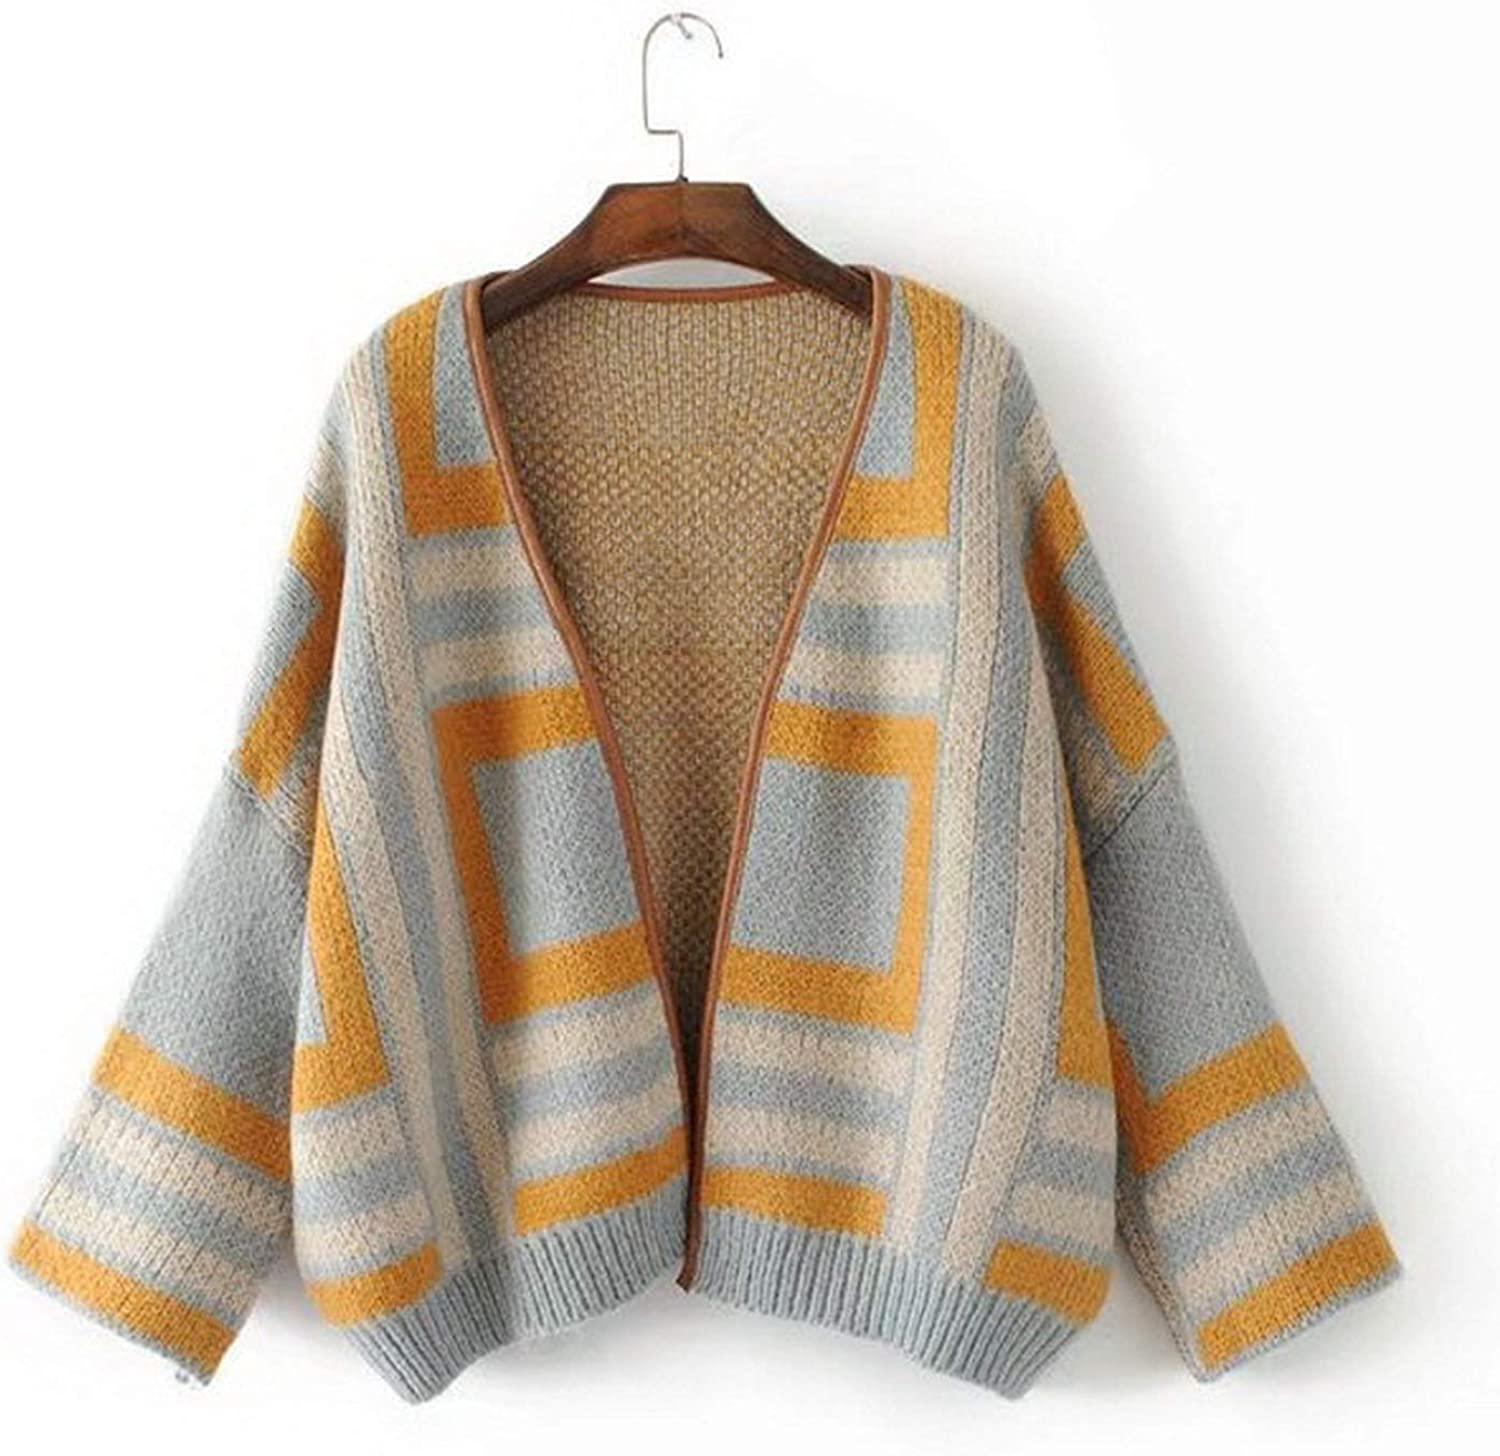 colorfulspace Winter Oversized Women Knitted Cardigan Knitting Outwear Geometric Print Sweater